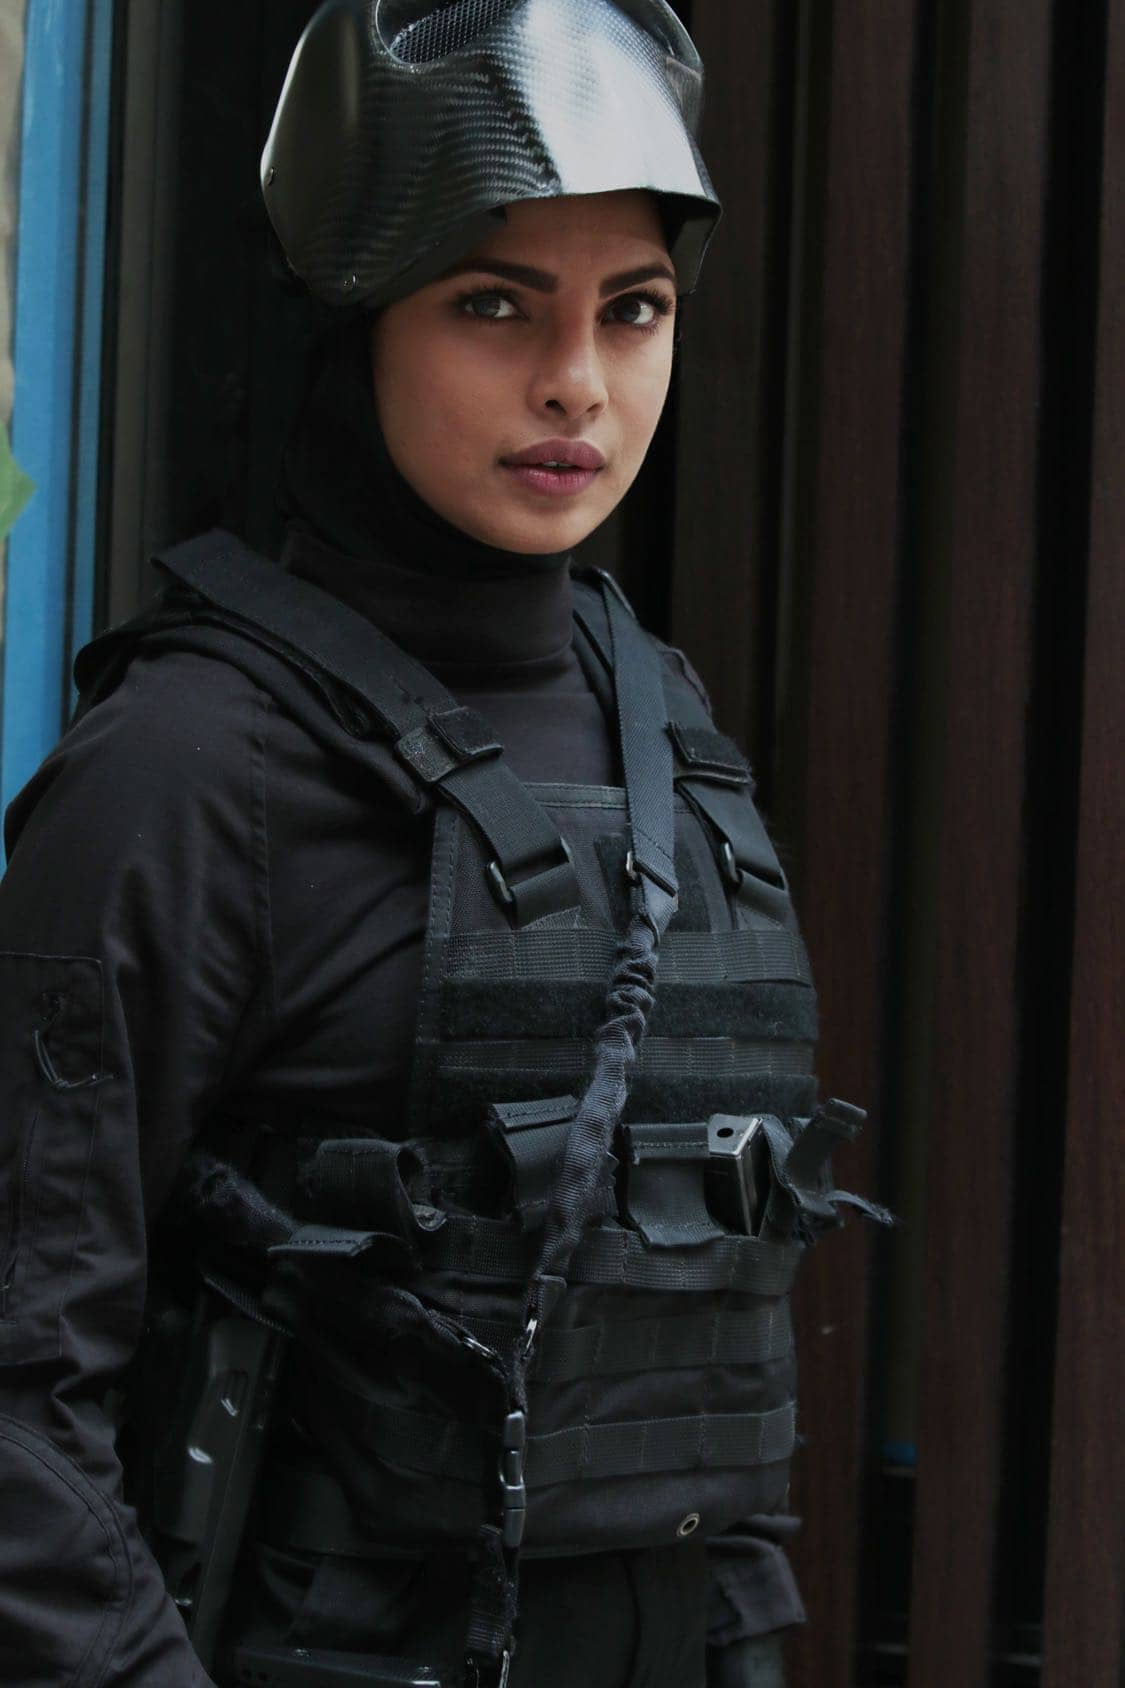 """QUANTICO - """"Stescalade"""" - The new CIA recruits continue training at The Farm focusing on assessment, while in the future, Alex goes undercover to infiltrate the terrorist group holding everyone hostage where she is shocked to discover not everyone is a stranger on """"Quantico,"""" airing SUNDAY, OCTOBER 16 (10:00-11:00 p.m. EDT), on the ABC Television Network. (ABC/Giovanni Rufino) PRIYANKA CHOPRA"""